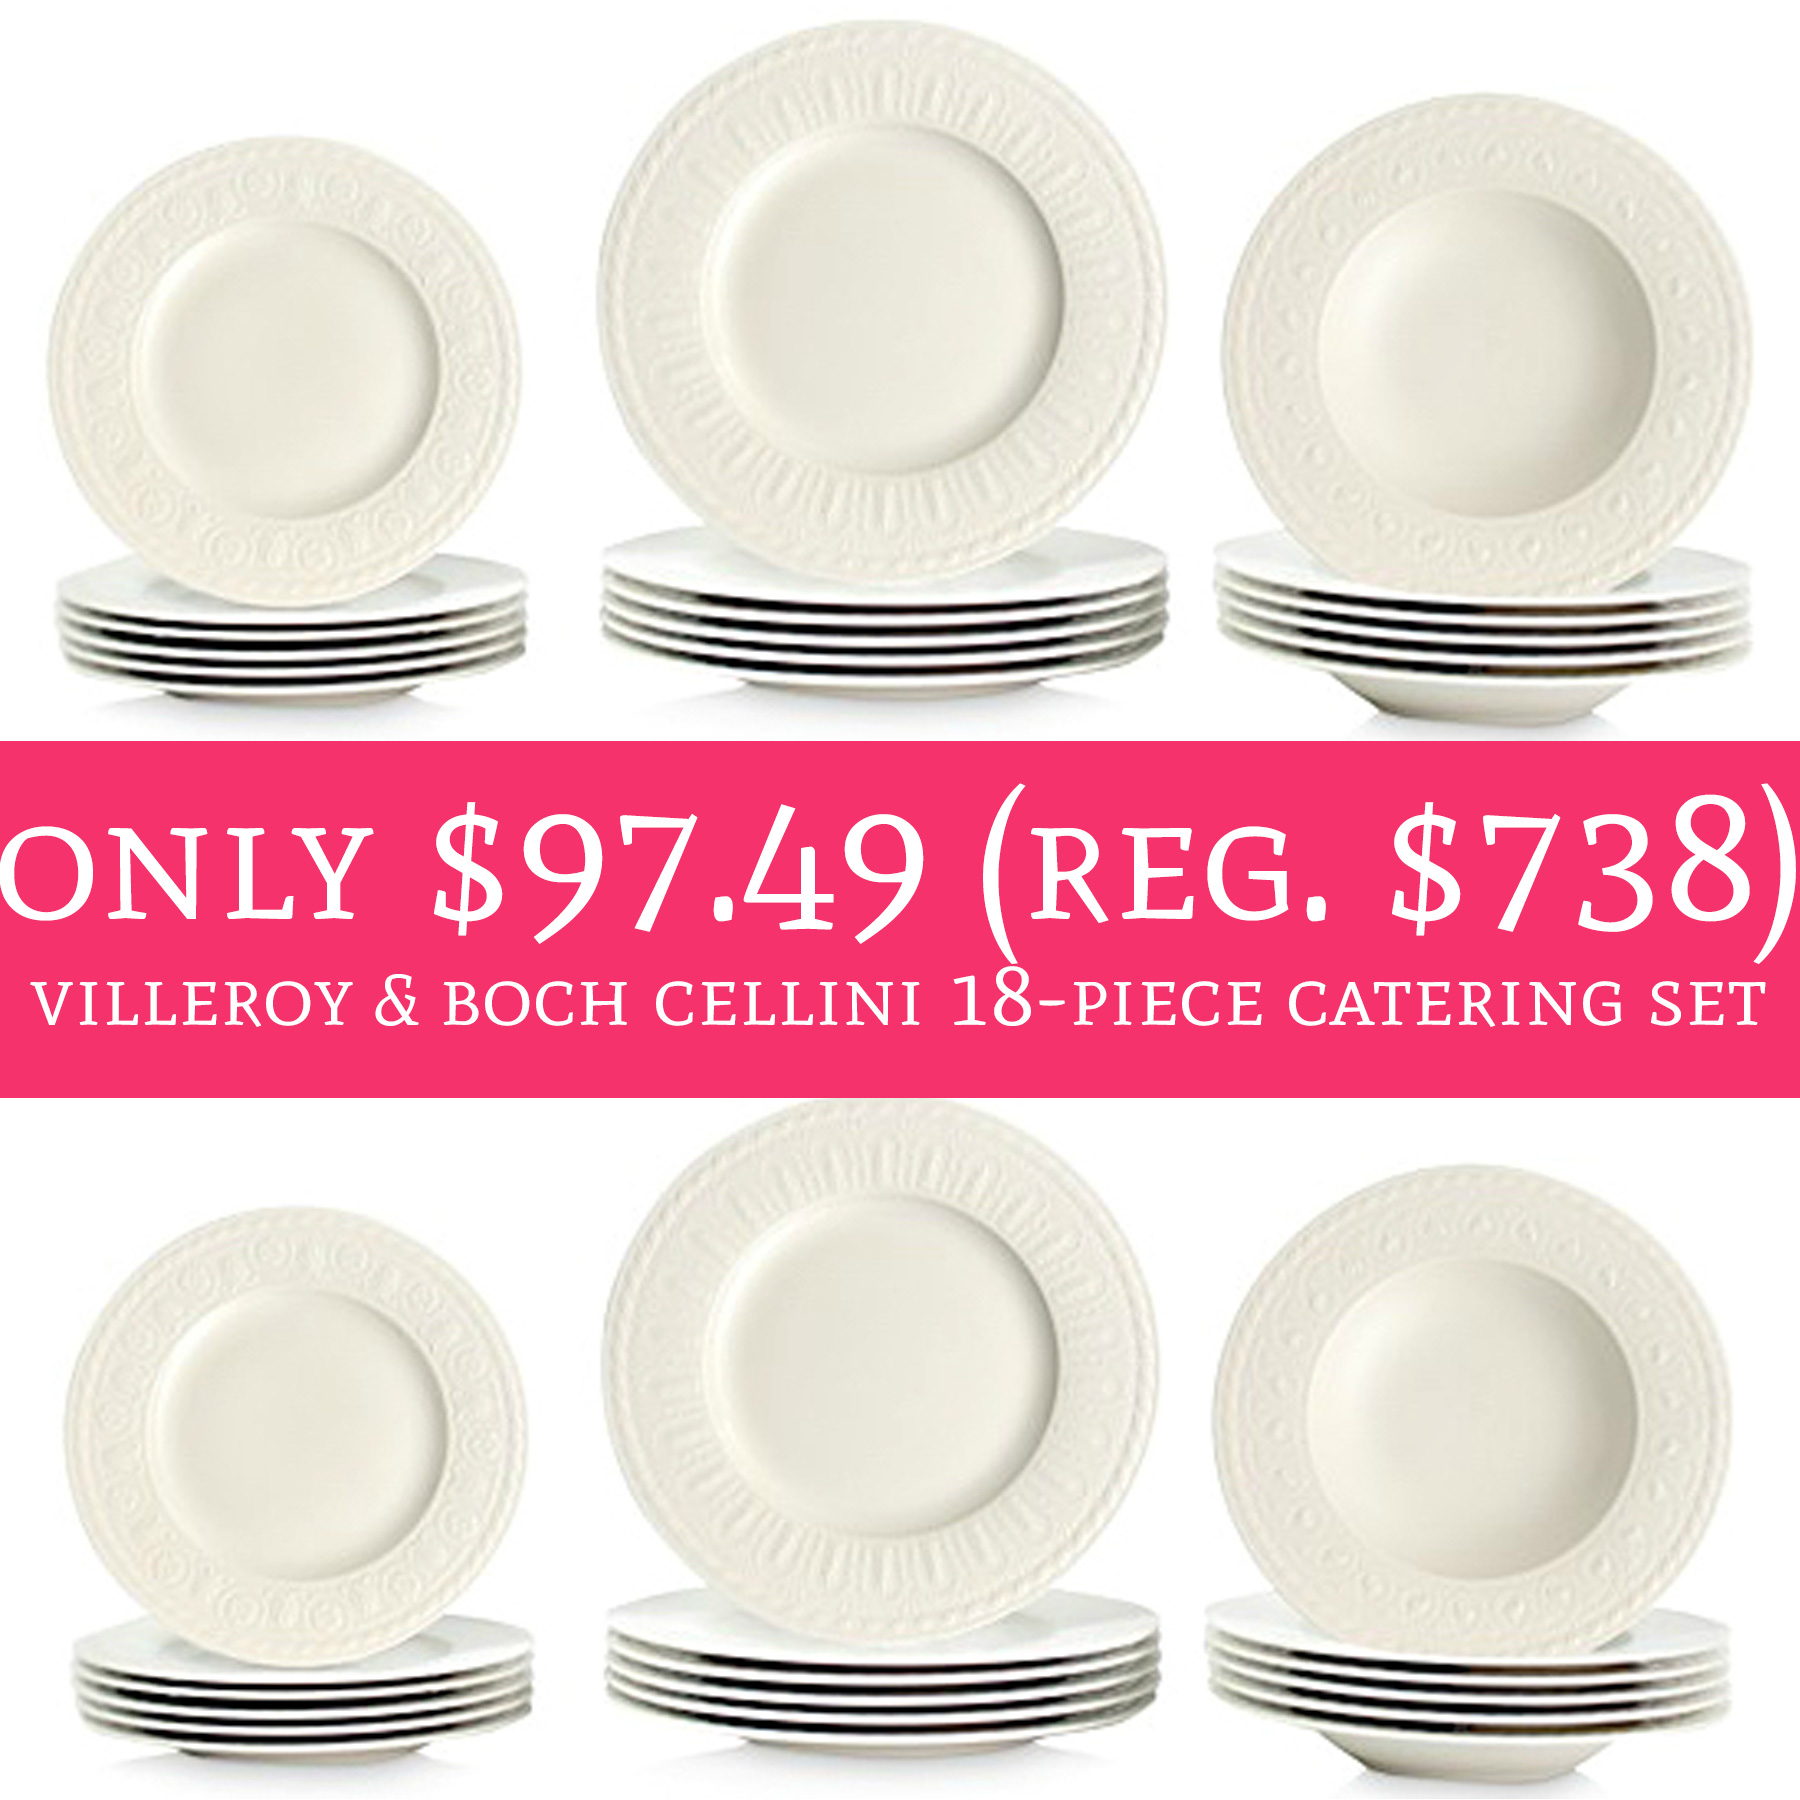 I just ordered mine!!  sc 1 st  Deal Hunting Babe & WOW! Only $97.49 (Regular $738) Villeroy u0026 Boch Cellini 18-Piece ...